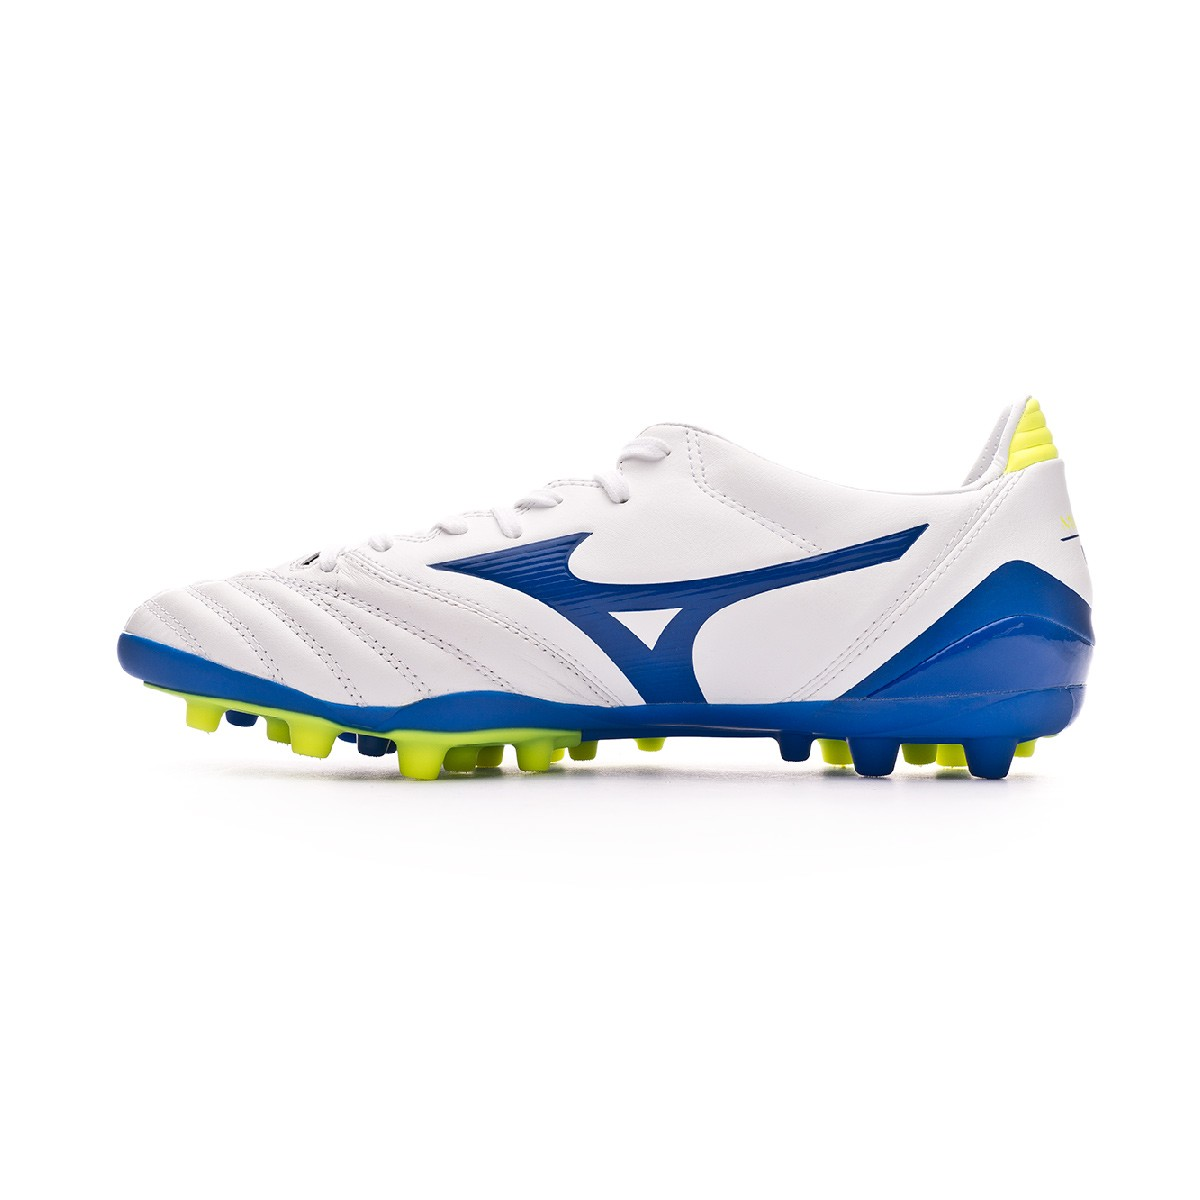 separation shoes dd93f 0f1e8 Bota Morelia Neo KL II AG White-Wave cup blue-Safety yellow